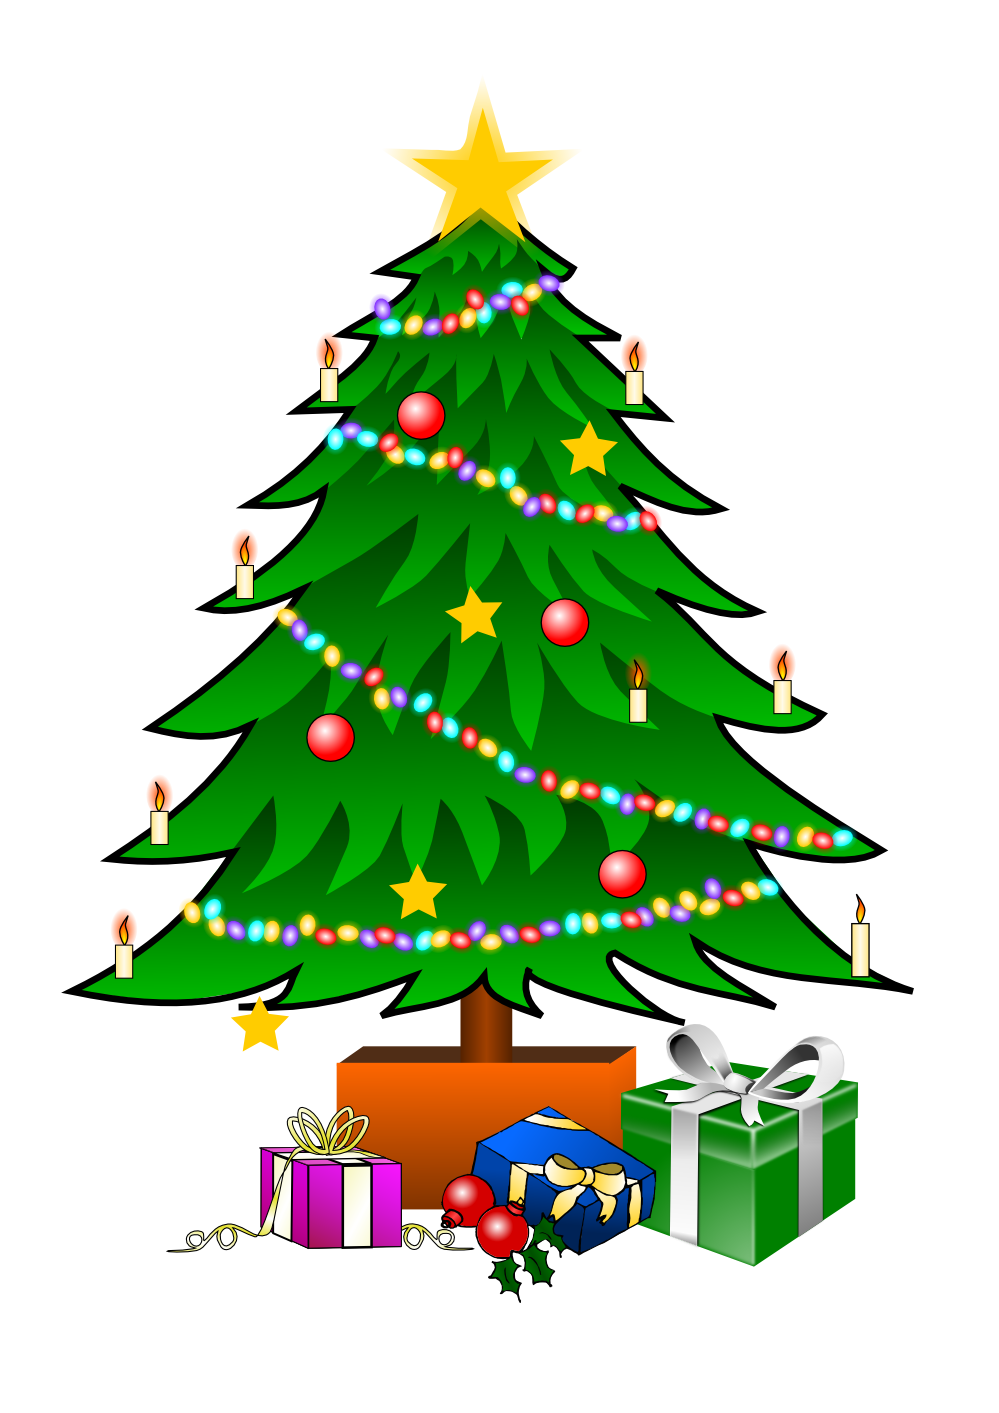 svg royalty free download This nice Christmas tree with presents clip art can be used for